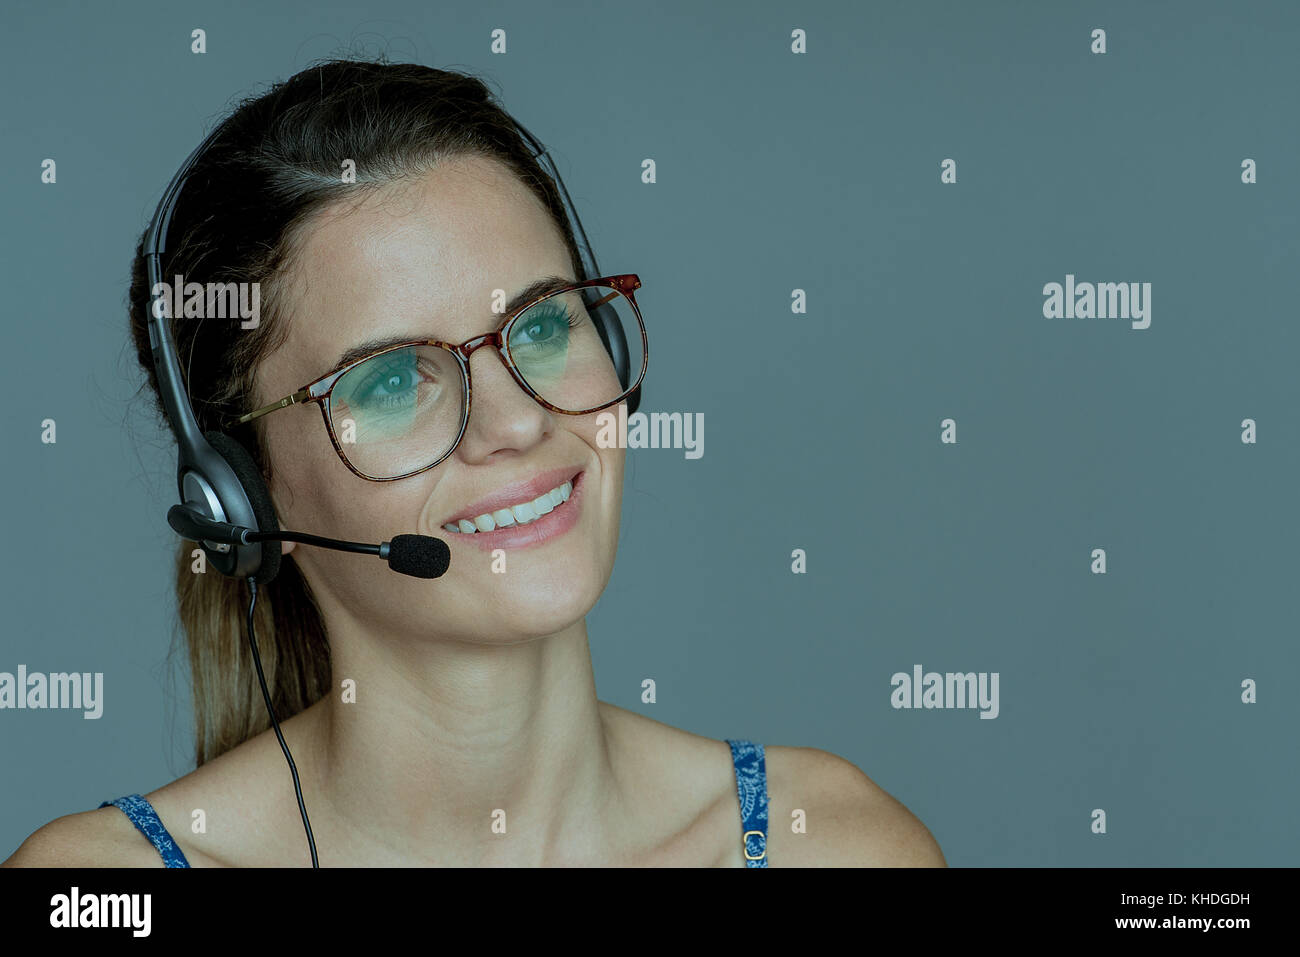 Young woman wearing headset, smiling cheerfully Stock Photo